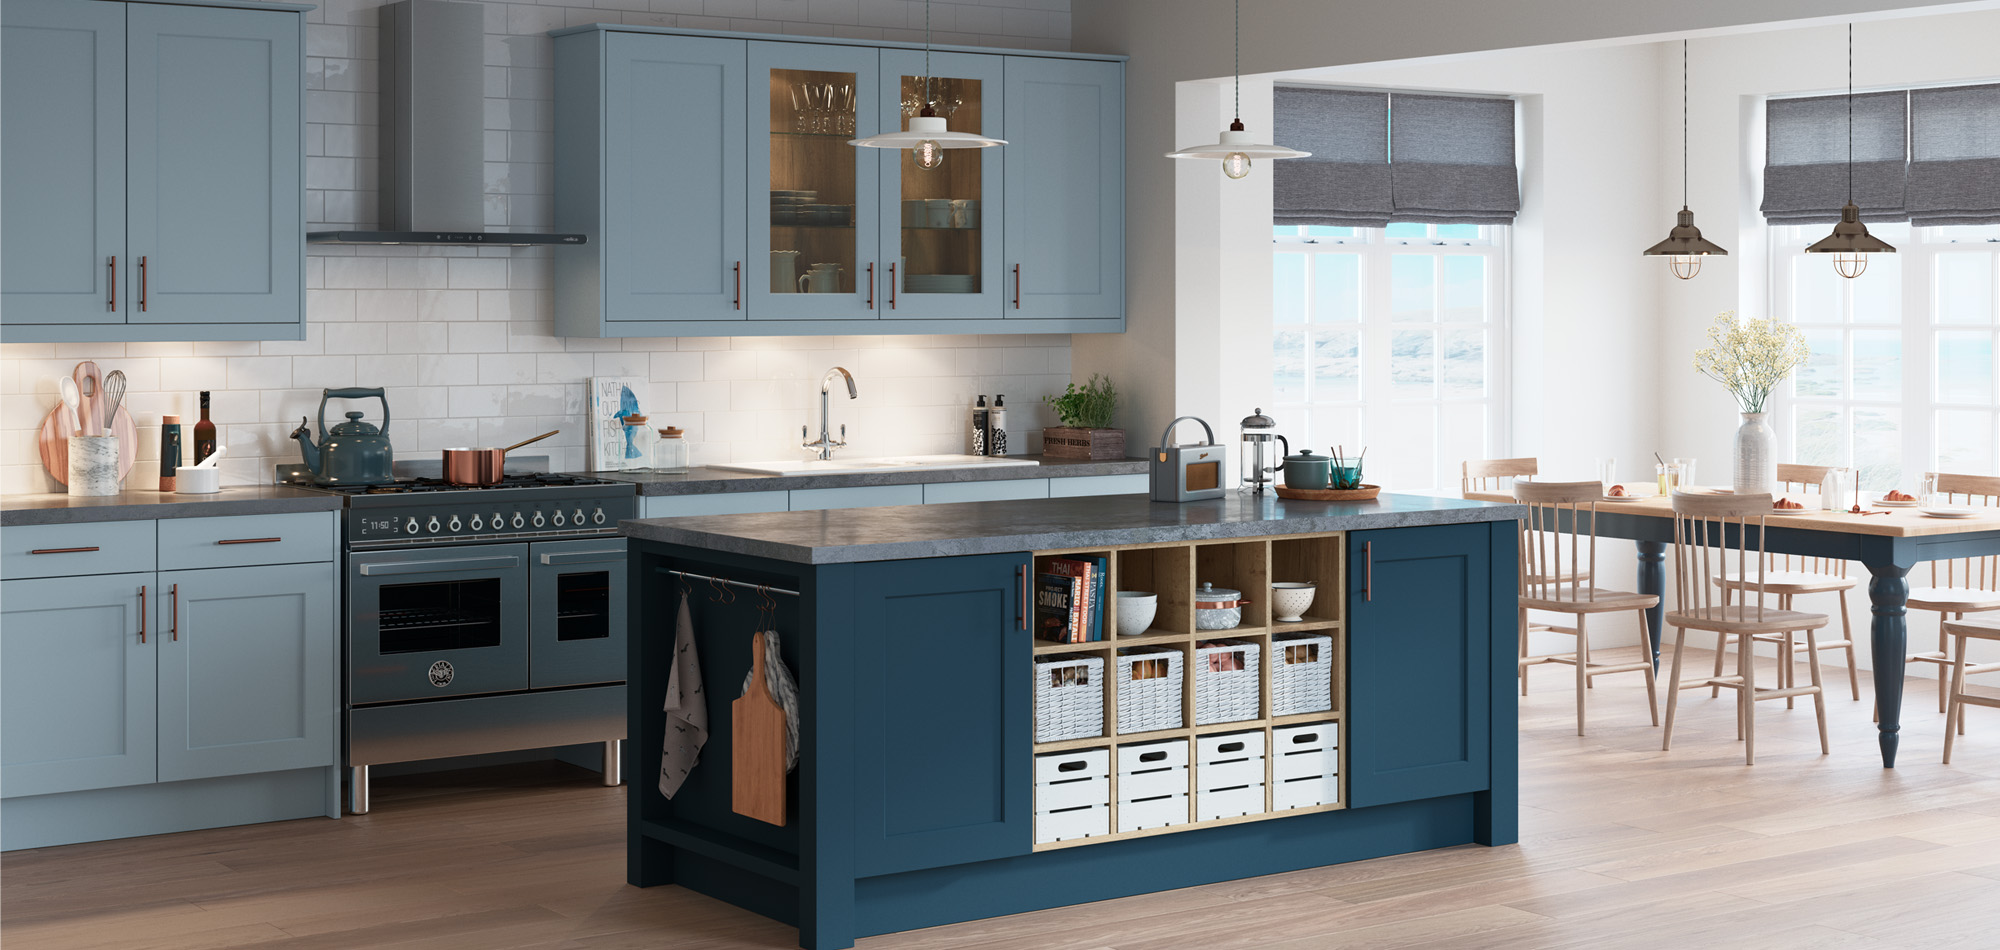 Town and Country Mereway Kitchen